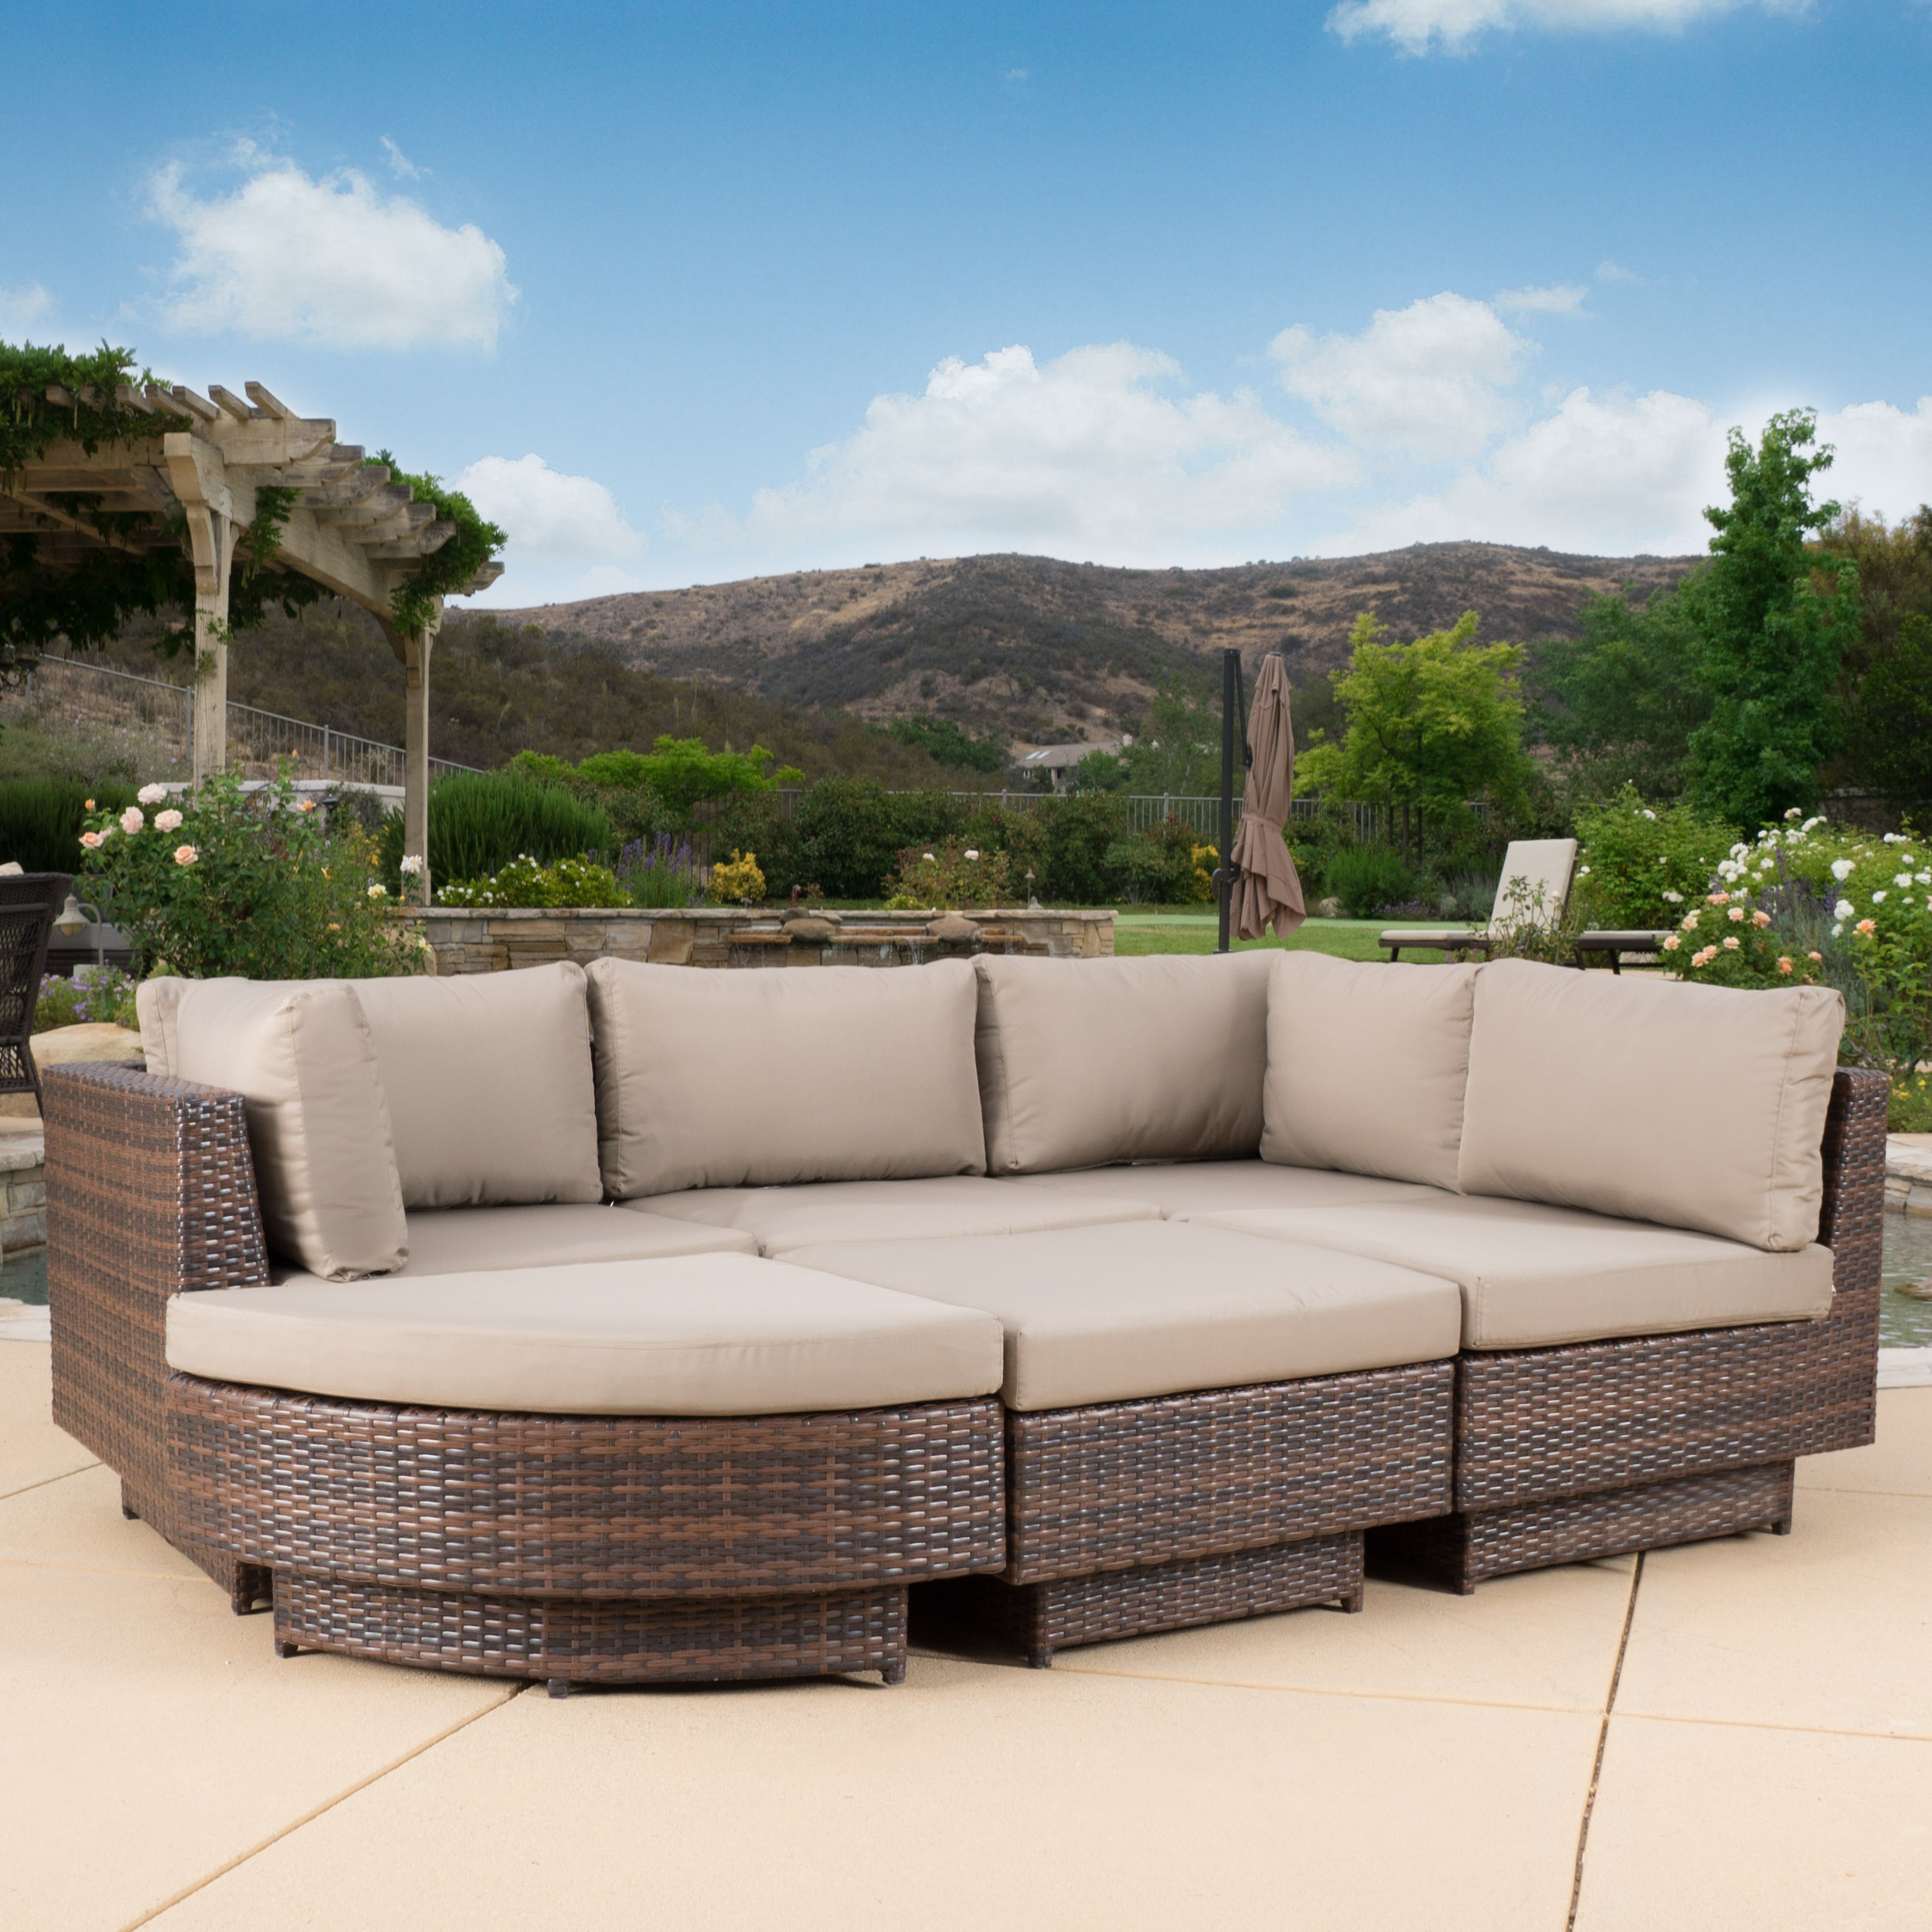 Shiann Outdoor 6-piece Multibrown Wicker Sofa Set